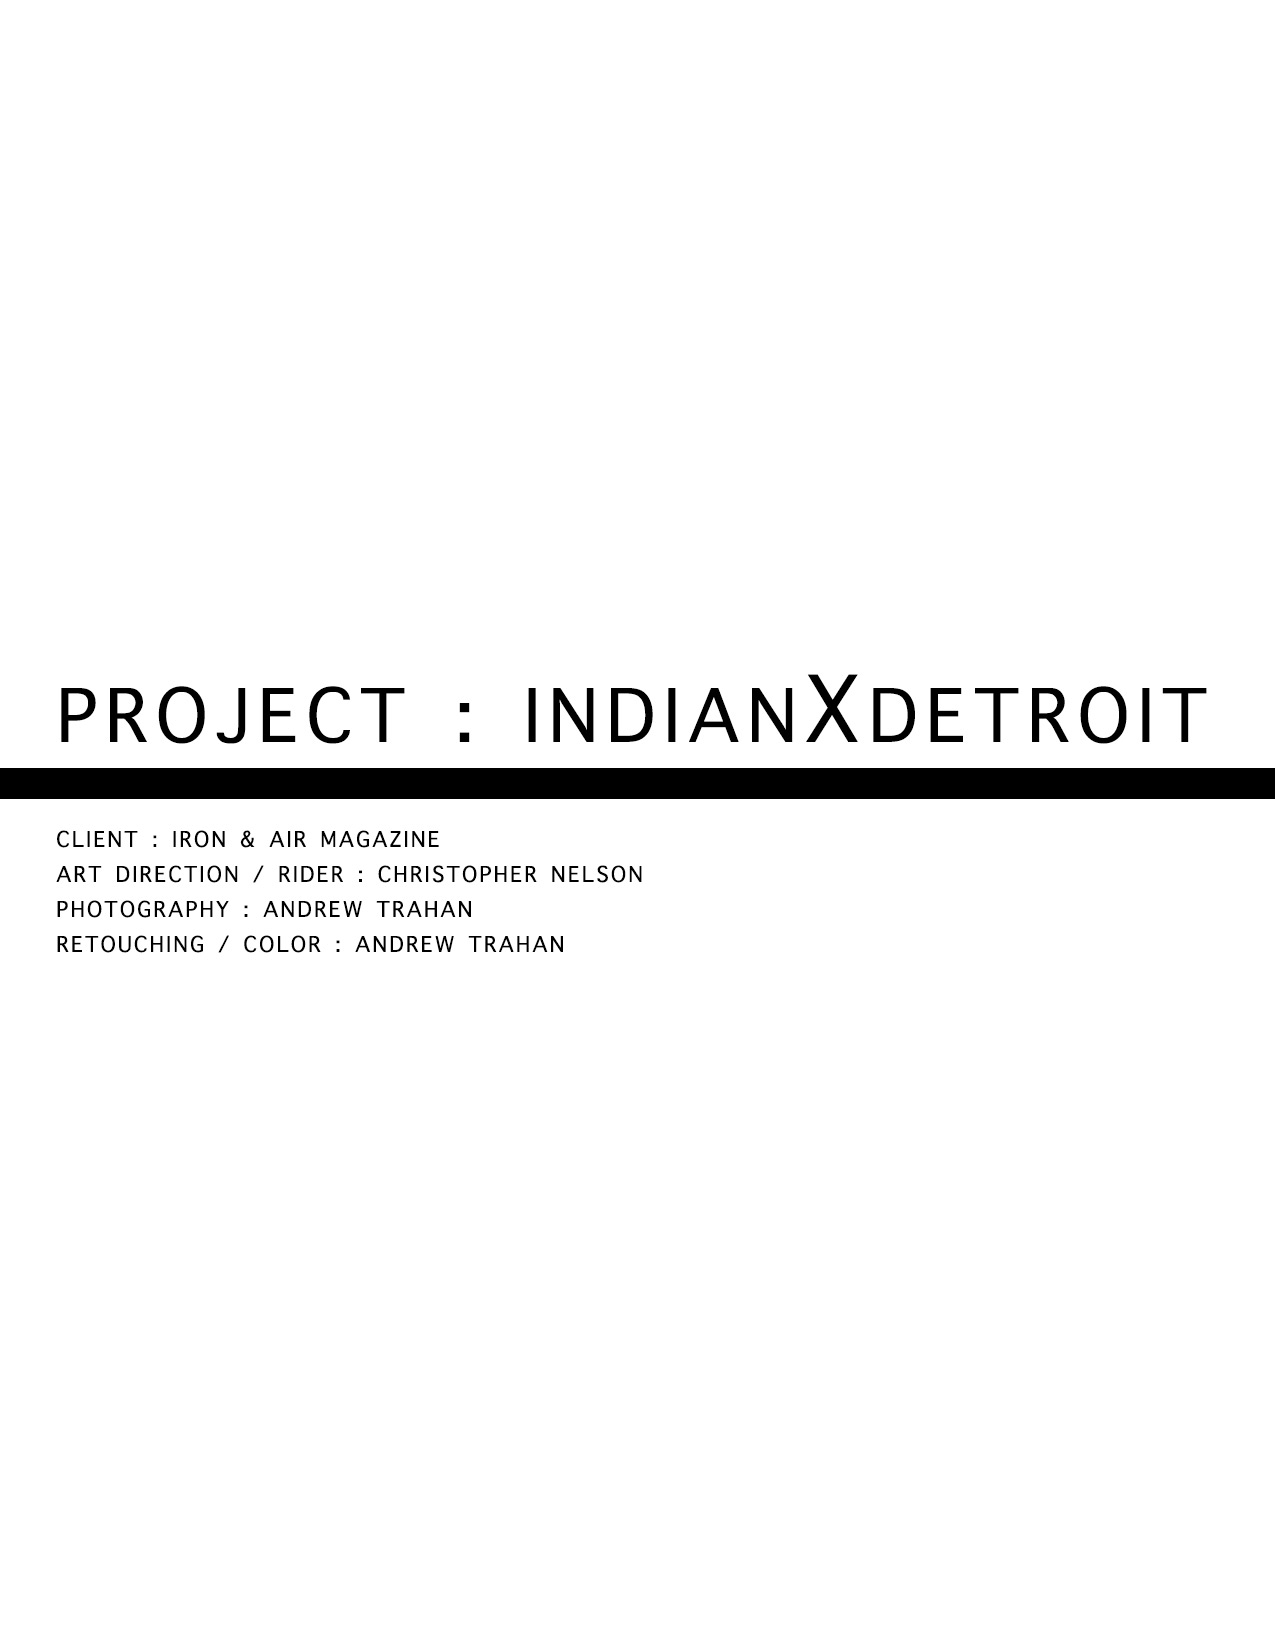 indianPROJECT---OPENER-PAGE